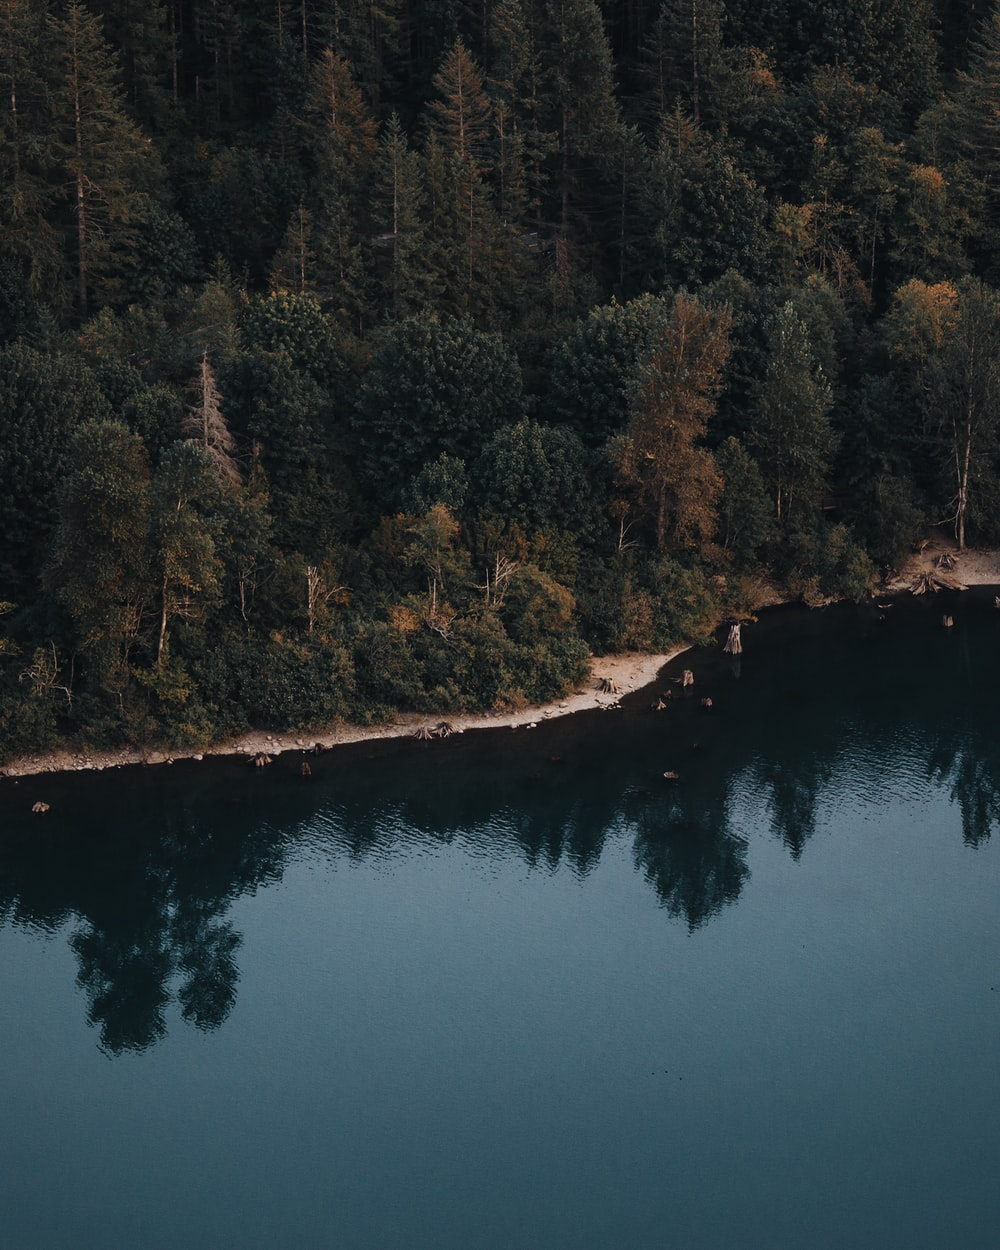 aerial photo of green forest near body of water during daytime